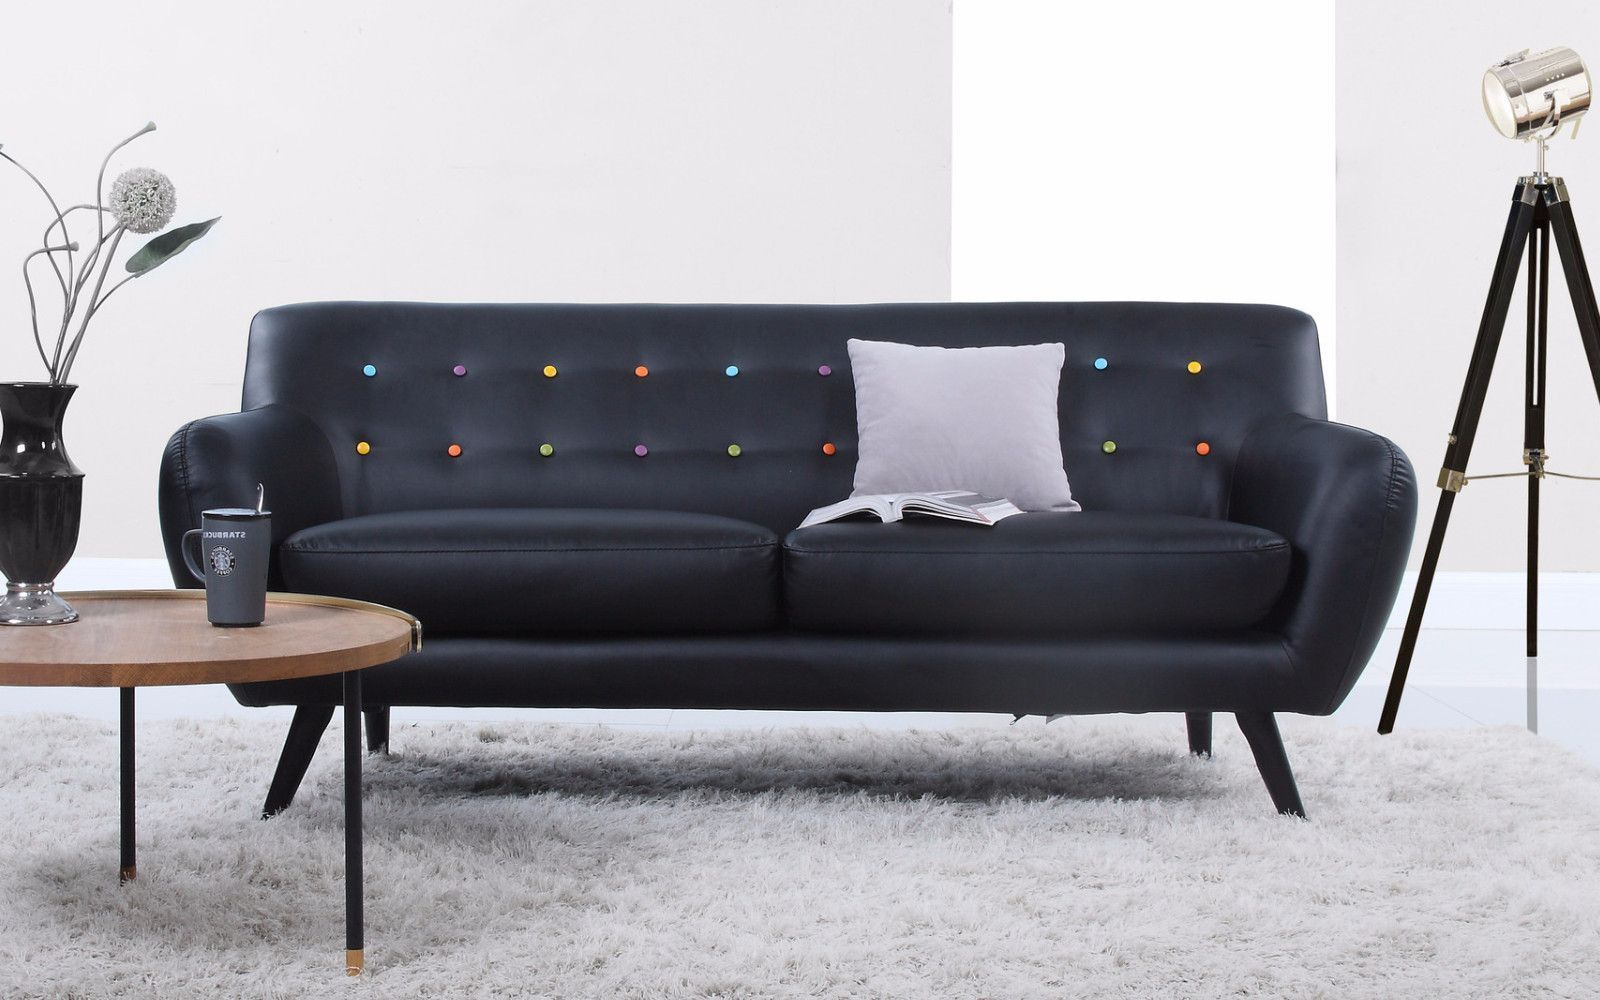 Mid Century Modern Tufted Bonded Leather Sofa In Color Black With Multi  Color Button Details